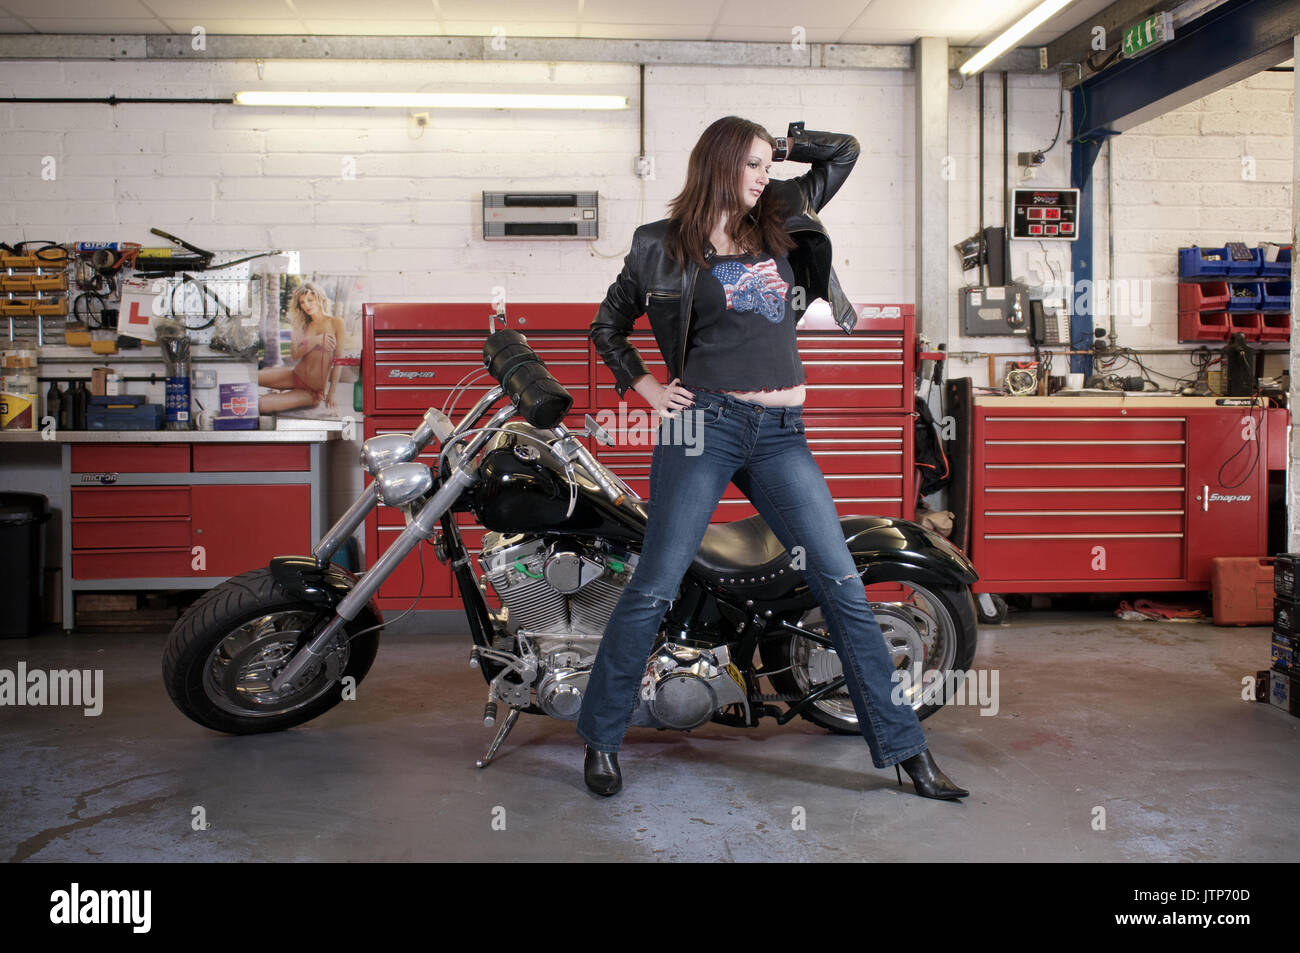 Are not Custom chopper motorcycles and girls